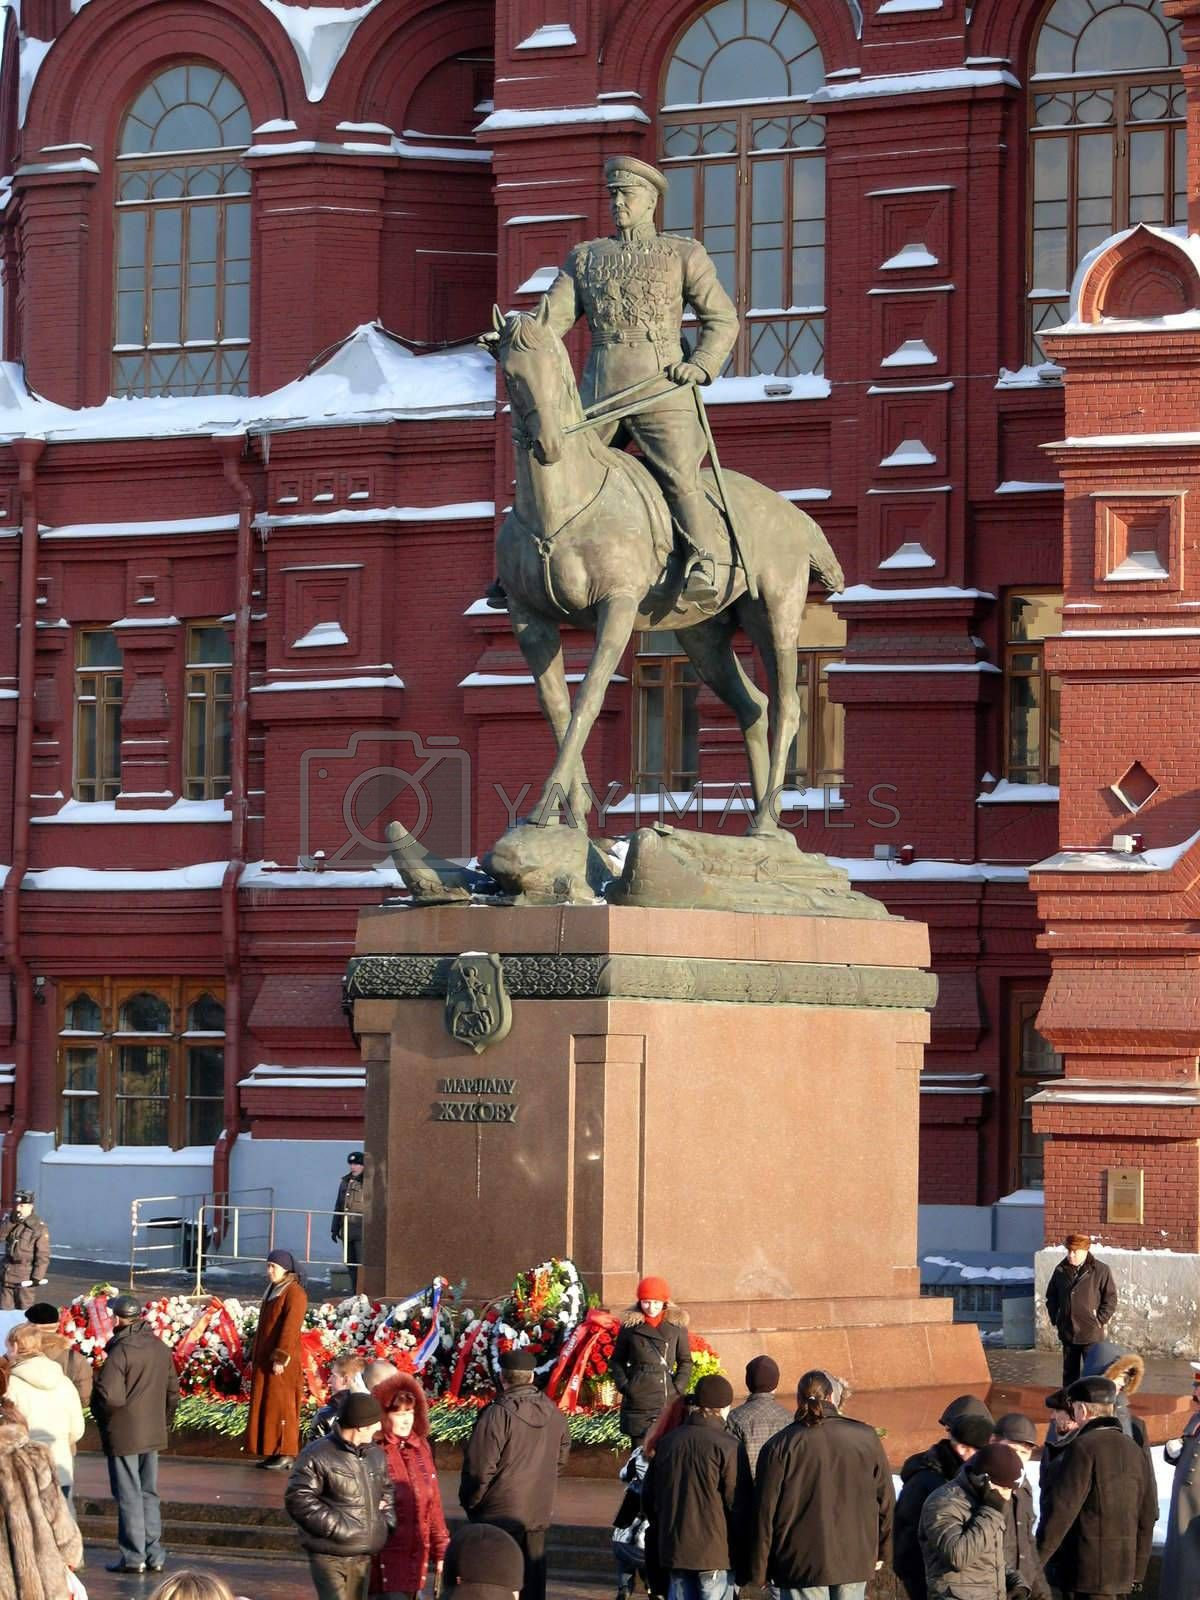 Moscow, Russia - February 23, 2010: Winter day. Peoples walks near monument of Marshal Zhukov in Moscow, Russia